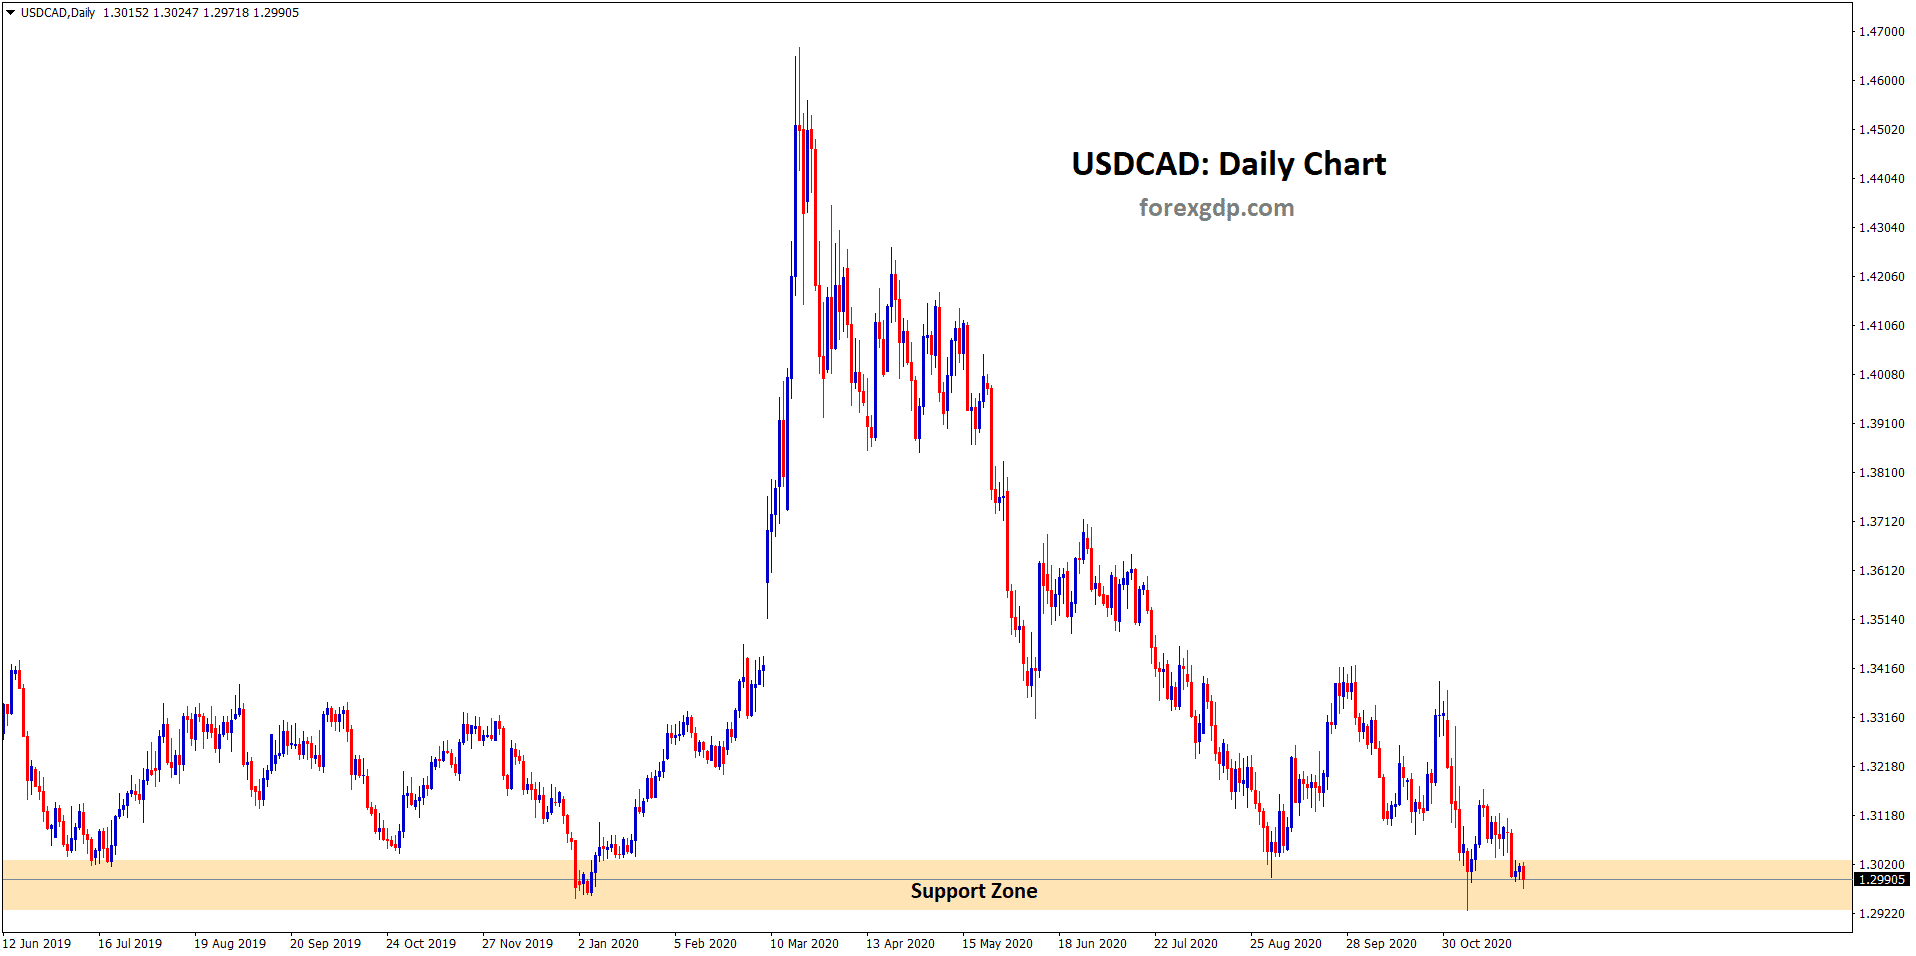 USDCAD wandering around the support zone in daily chart